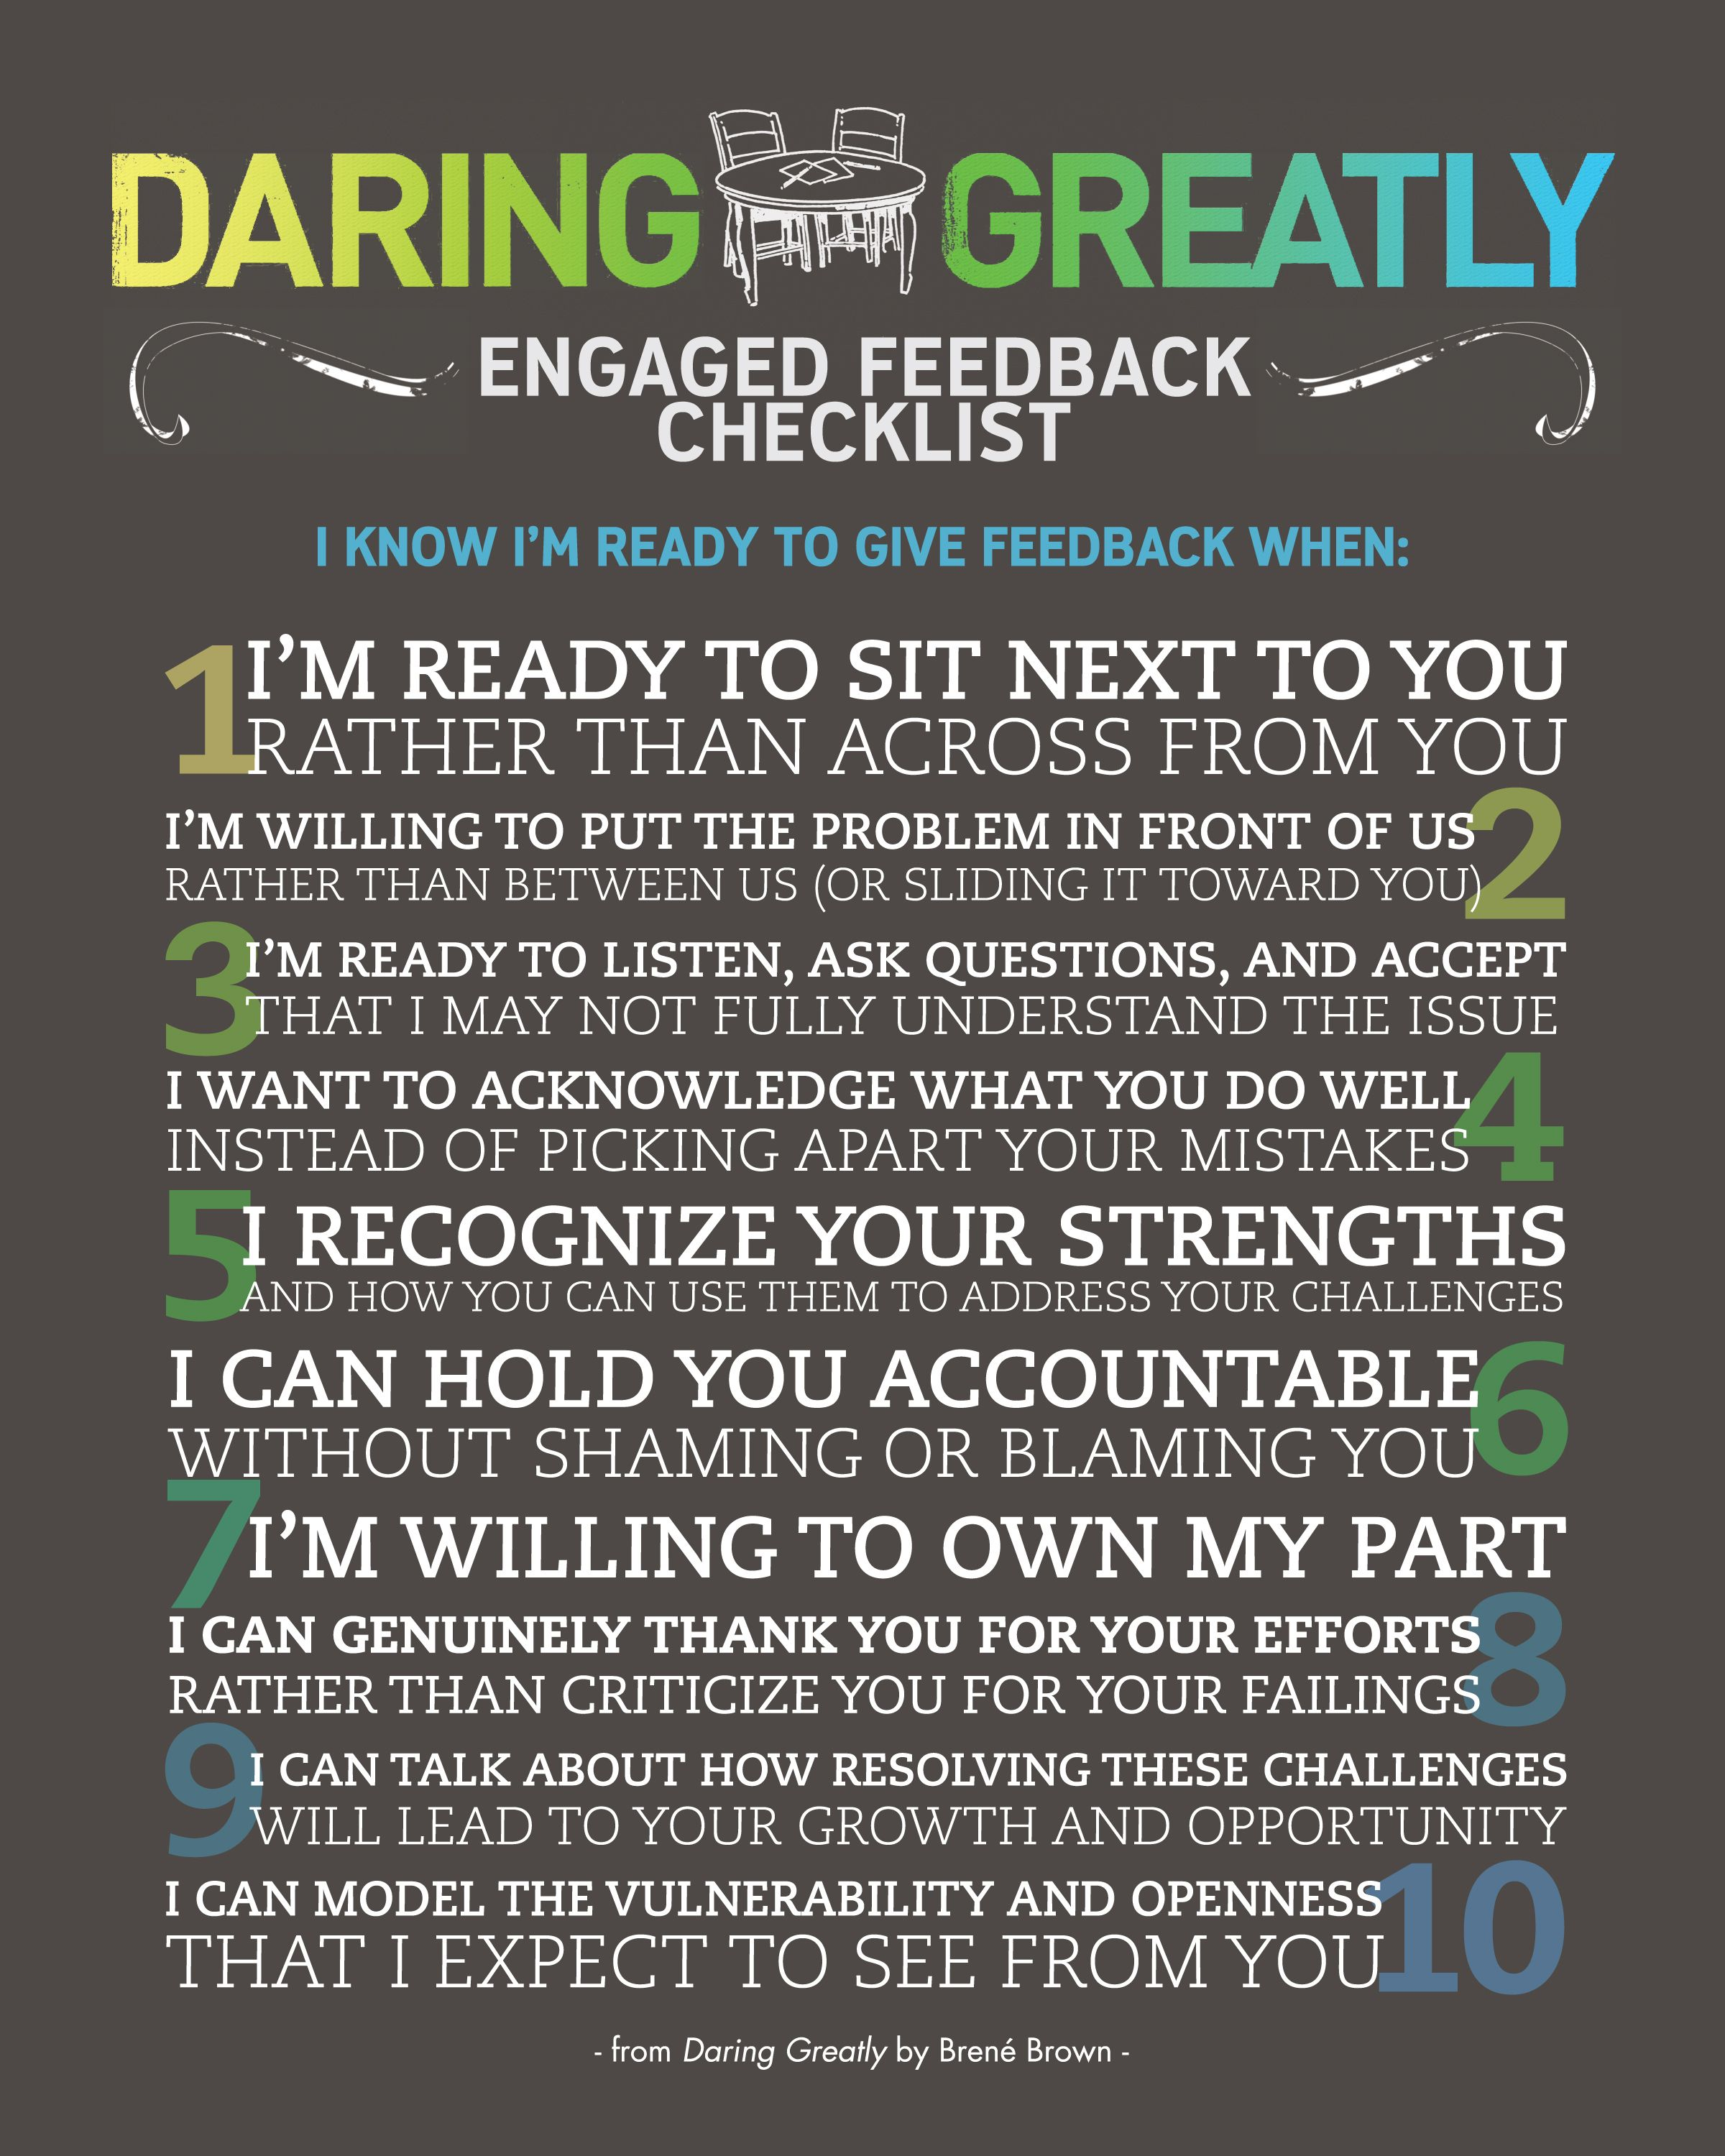 Daring Greatly Engagement Checklist